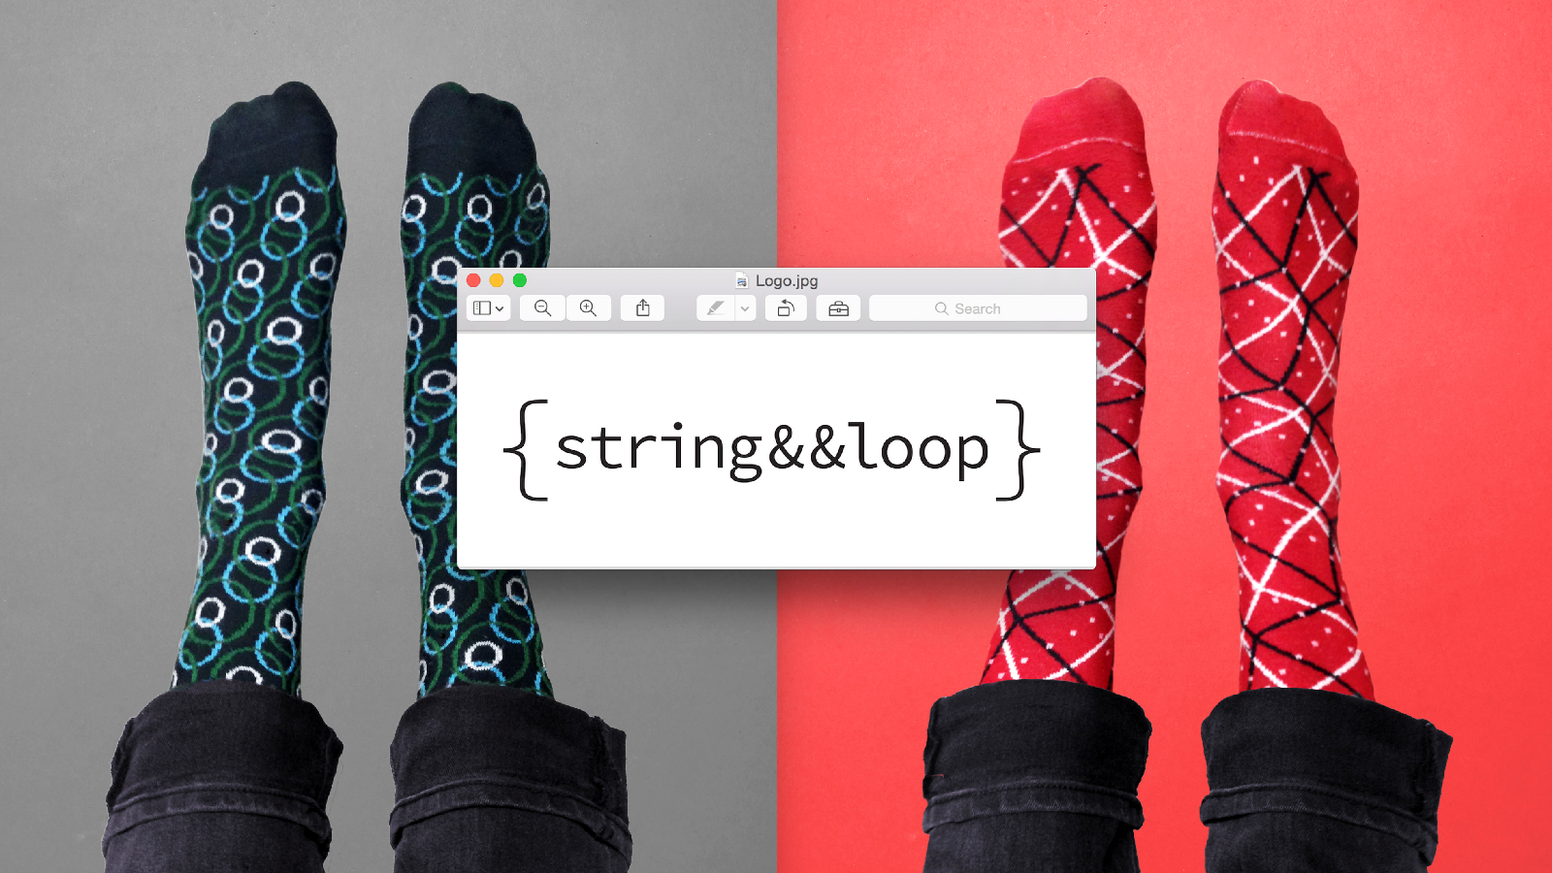 /* Thank you for your support! All four designs from this Kickstarter are available on www.stringandloop.com*/